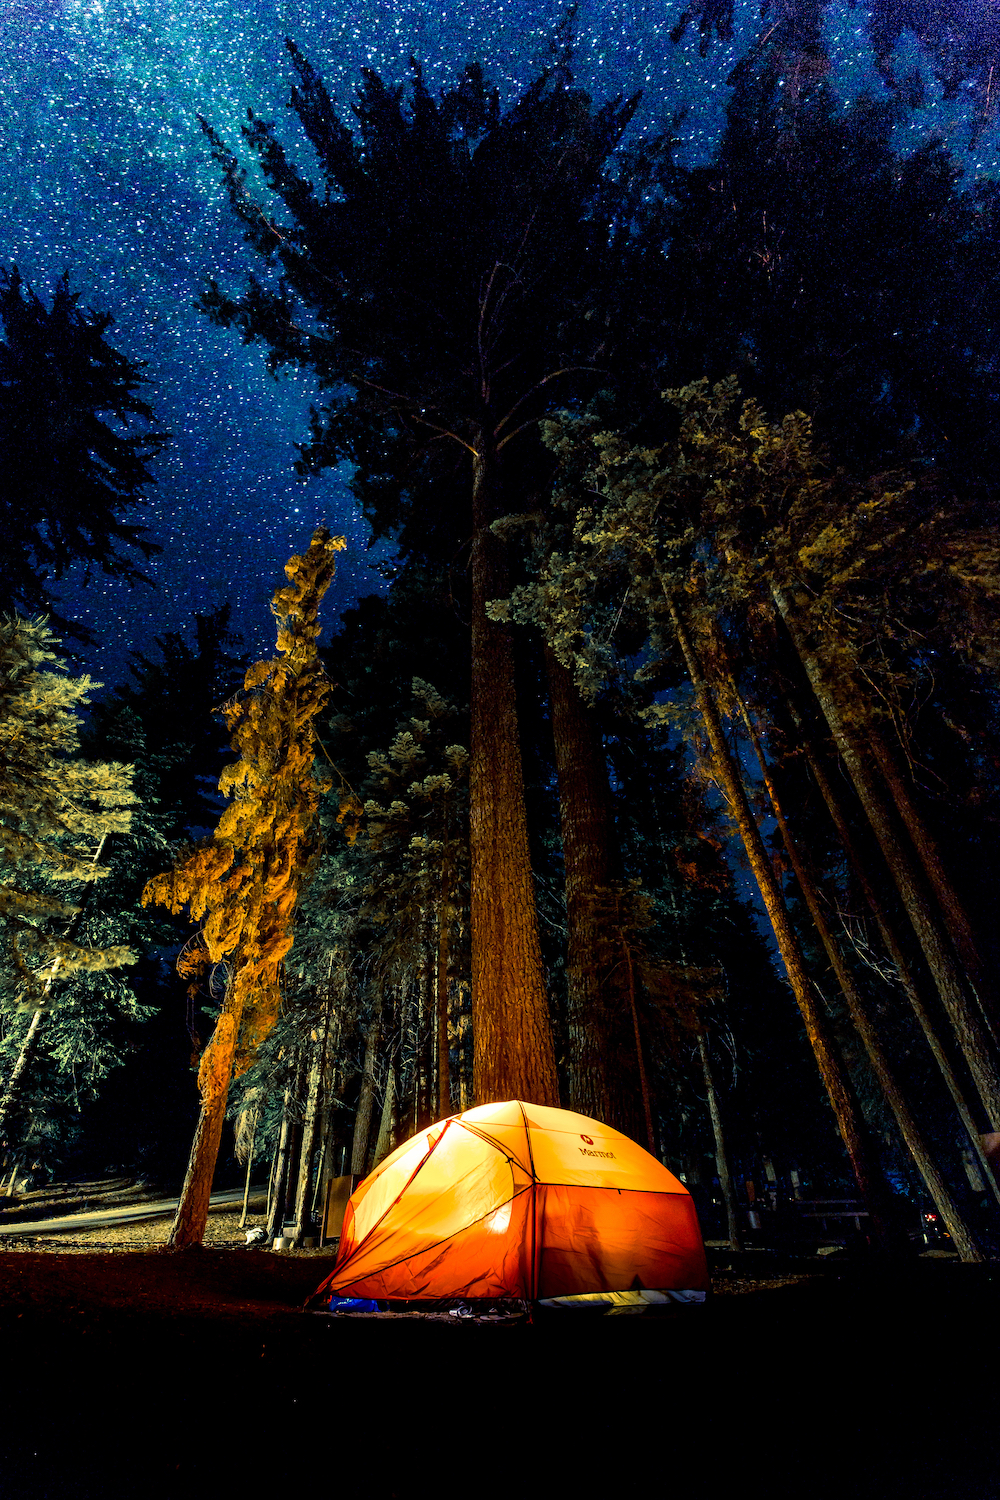 Tips for Winter and Fall Camping #camping #tentcamping #wintercamping